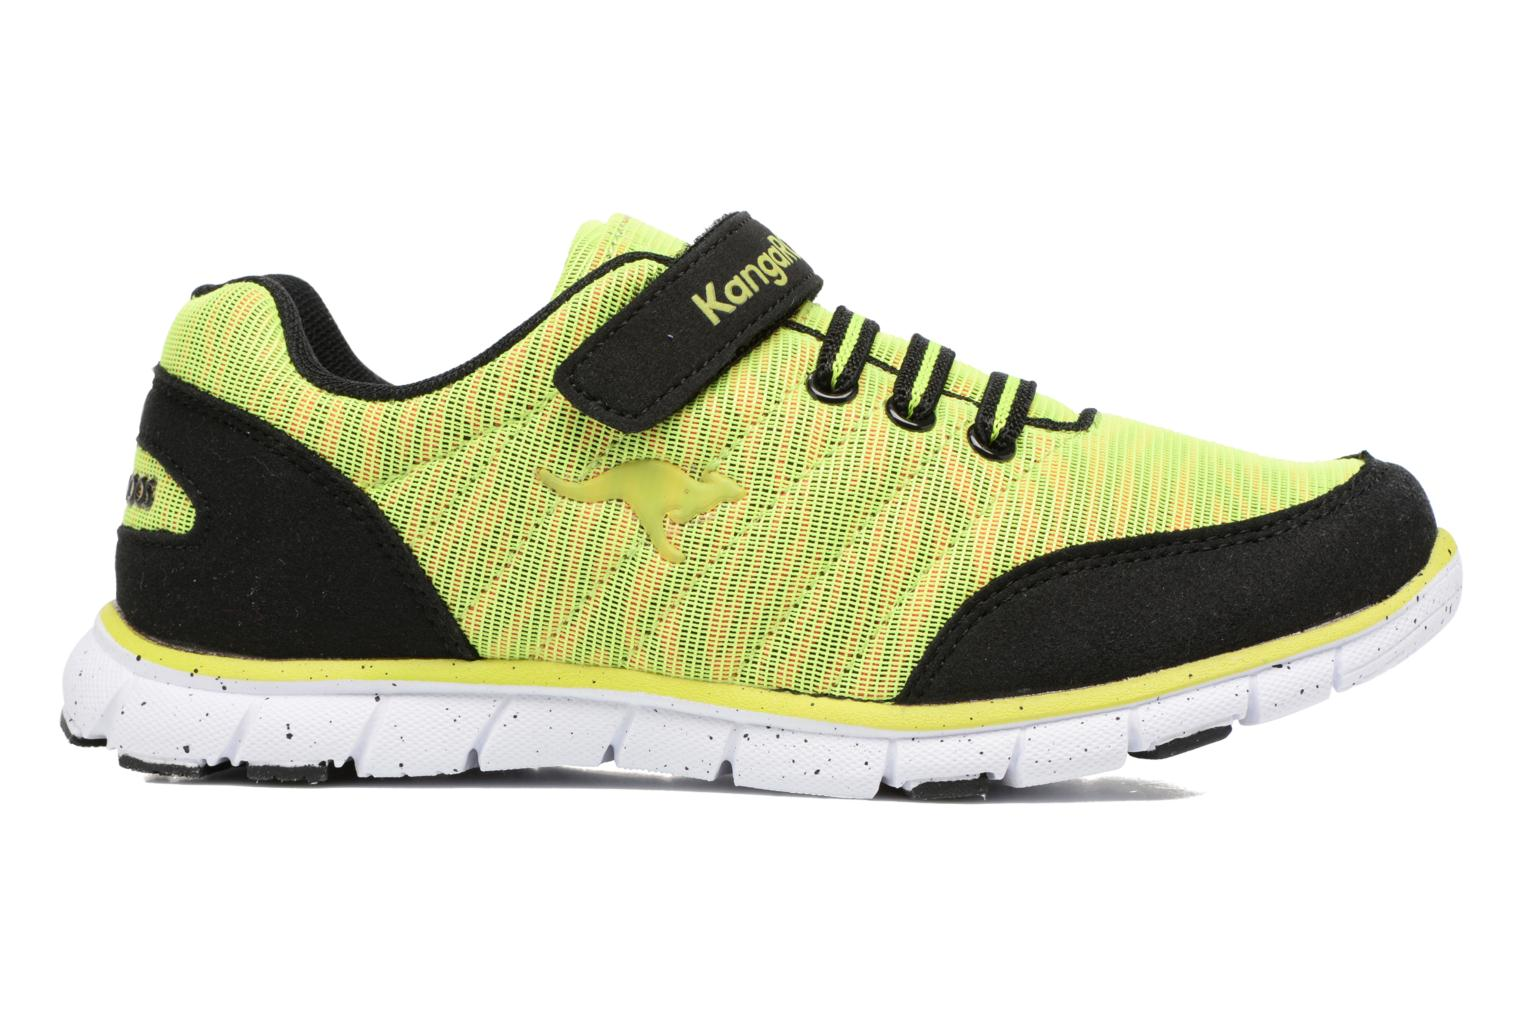 Nuri-Zebra lime/black